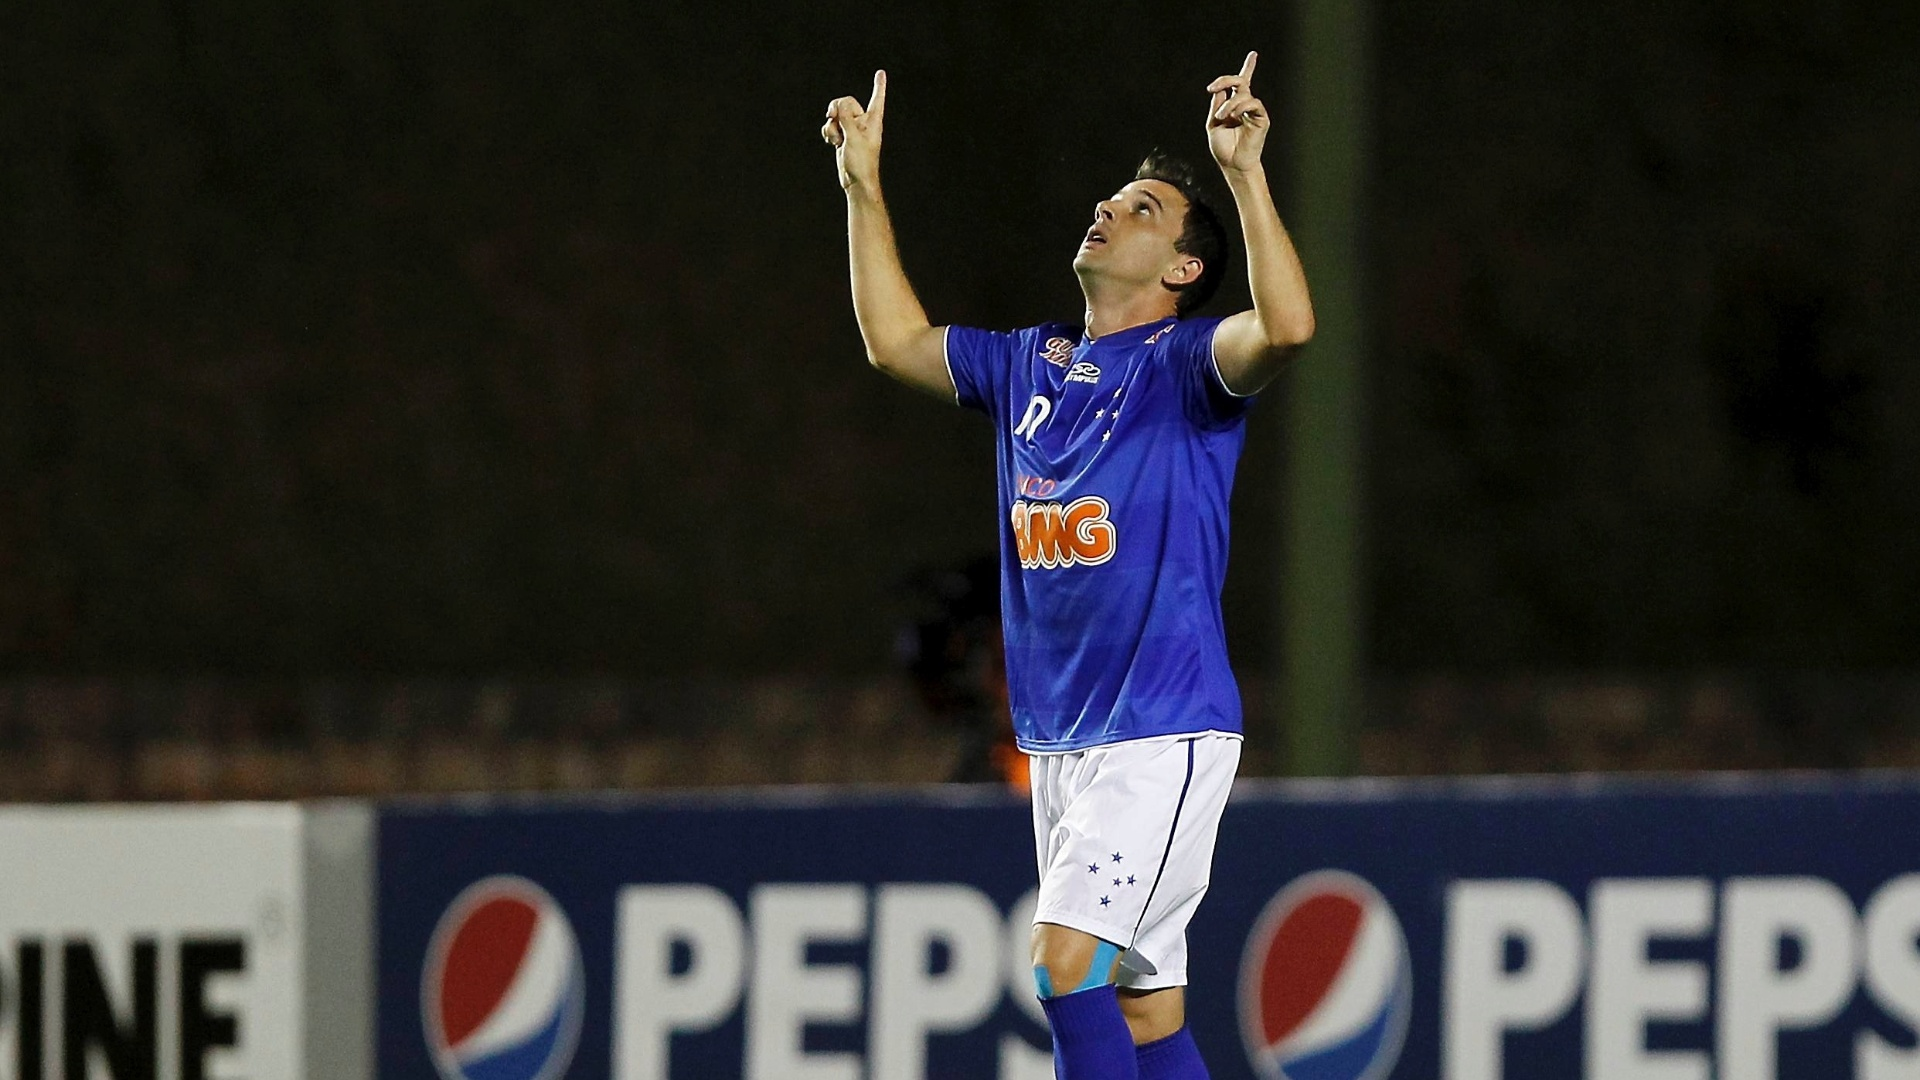 Montillo, do Cruzeiro, comemora aps marcar gol durante a partida contra o Bahia